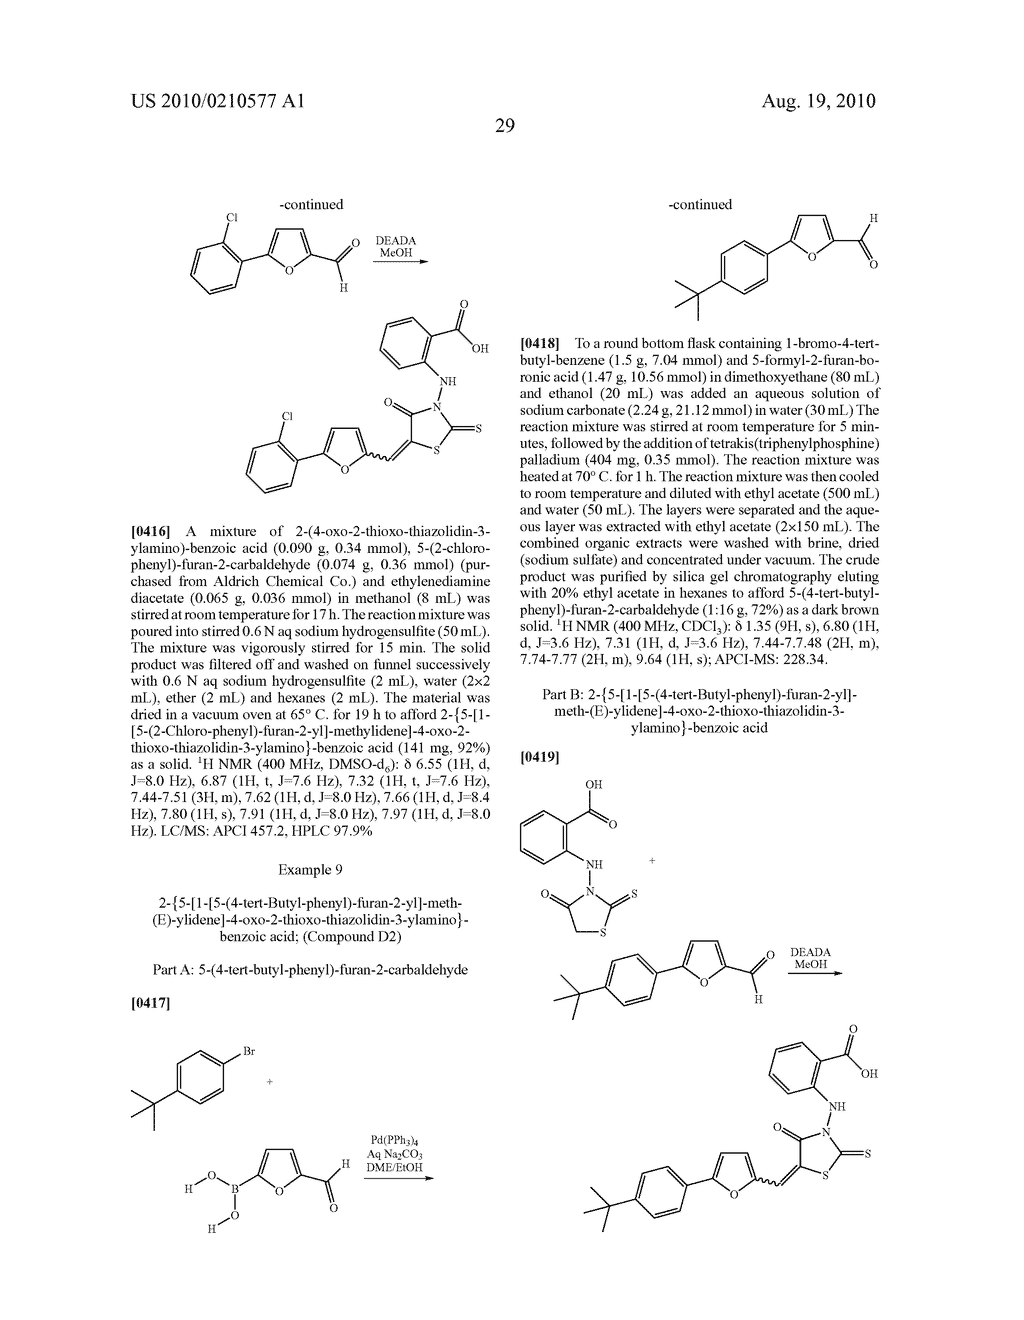 CYCLIC CARBOXYLIC ACID RHODANINE DERIVATIVES FOR THE TREATMENT AND PREVENTION OF TUBERCULOSIS - diagram, schematic, and image 39